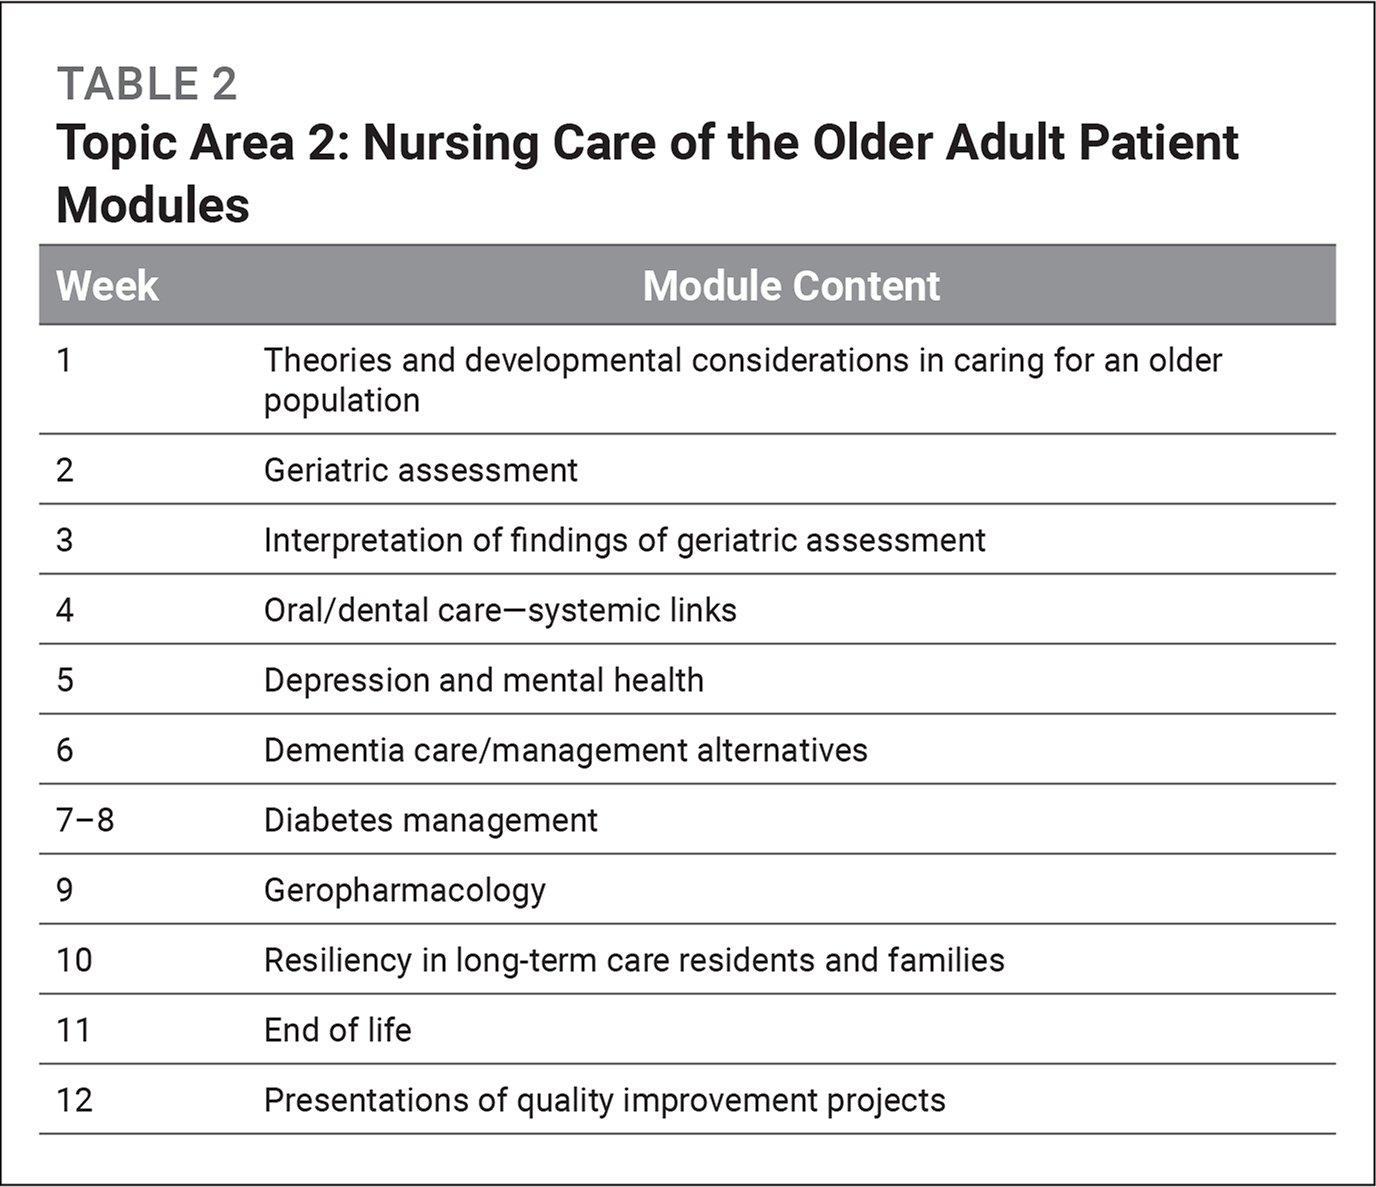 Topic Area 2: Nursing Care of the Older Adult Patient Modules